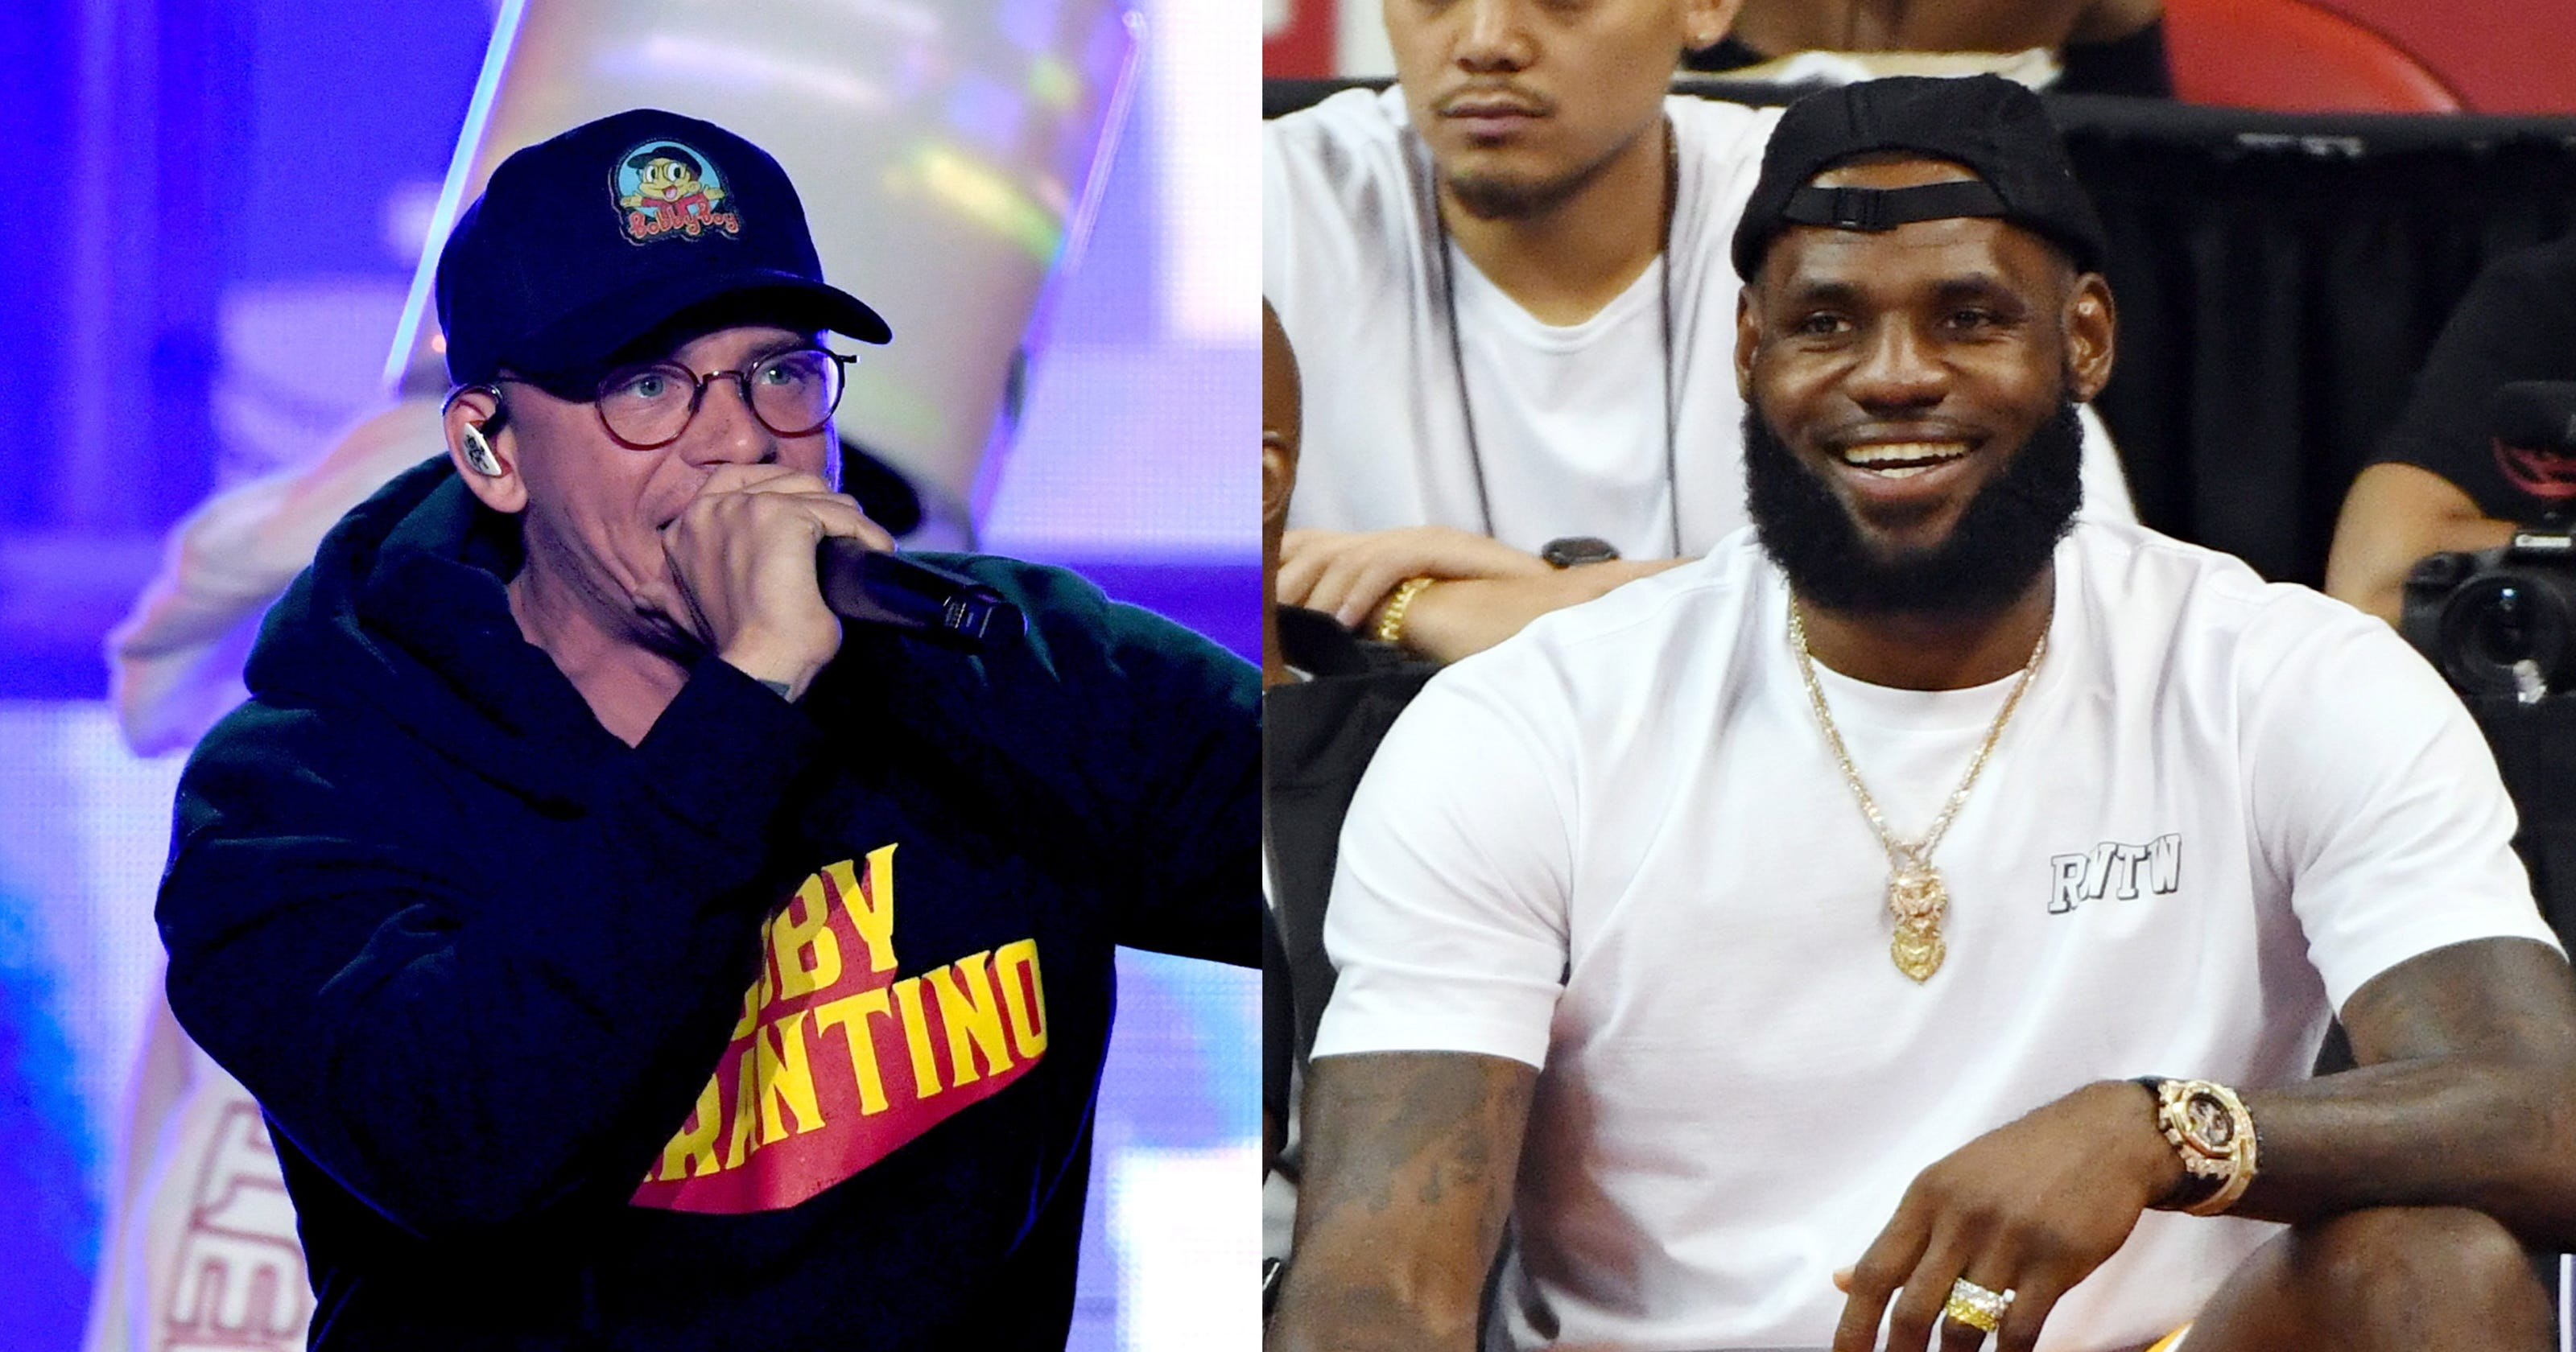 e0b272f1419a LeBron pumped to see rapper Logic rock his Lakers jersey at concert